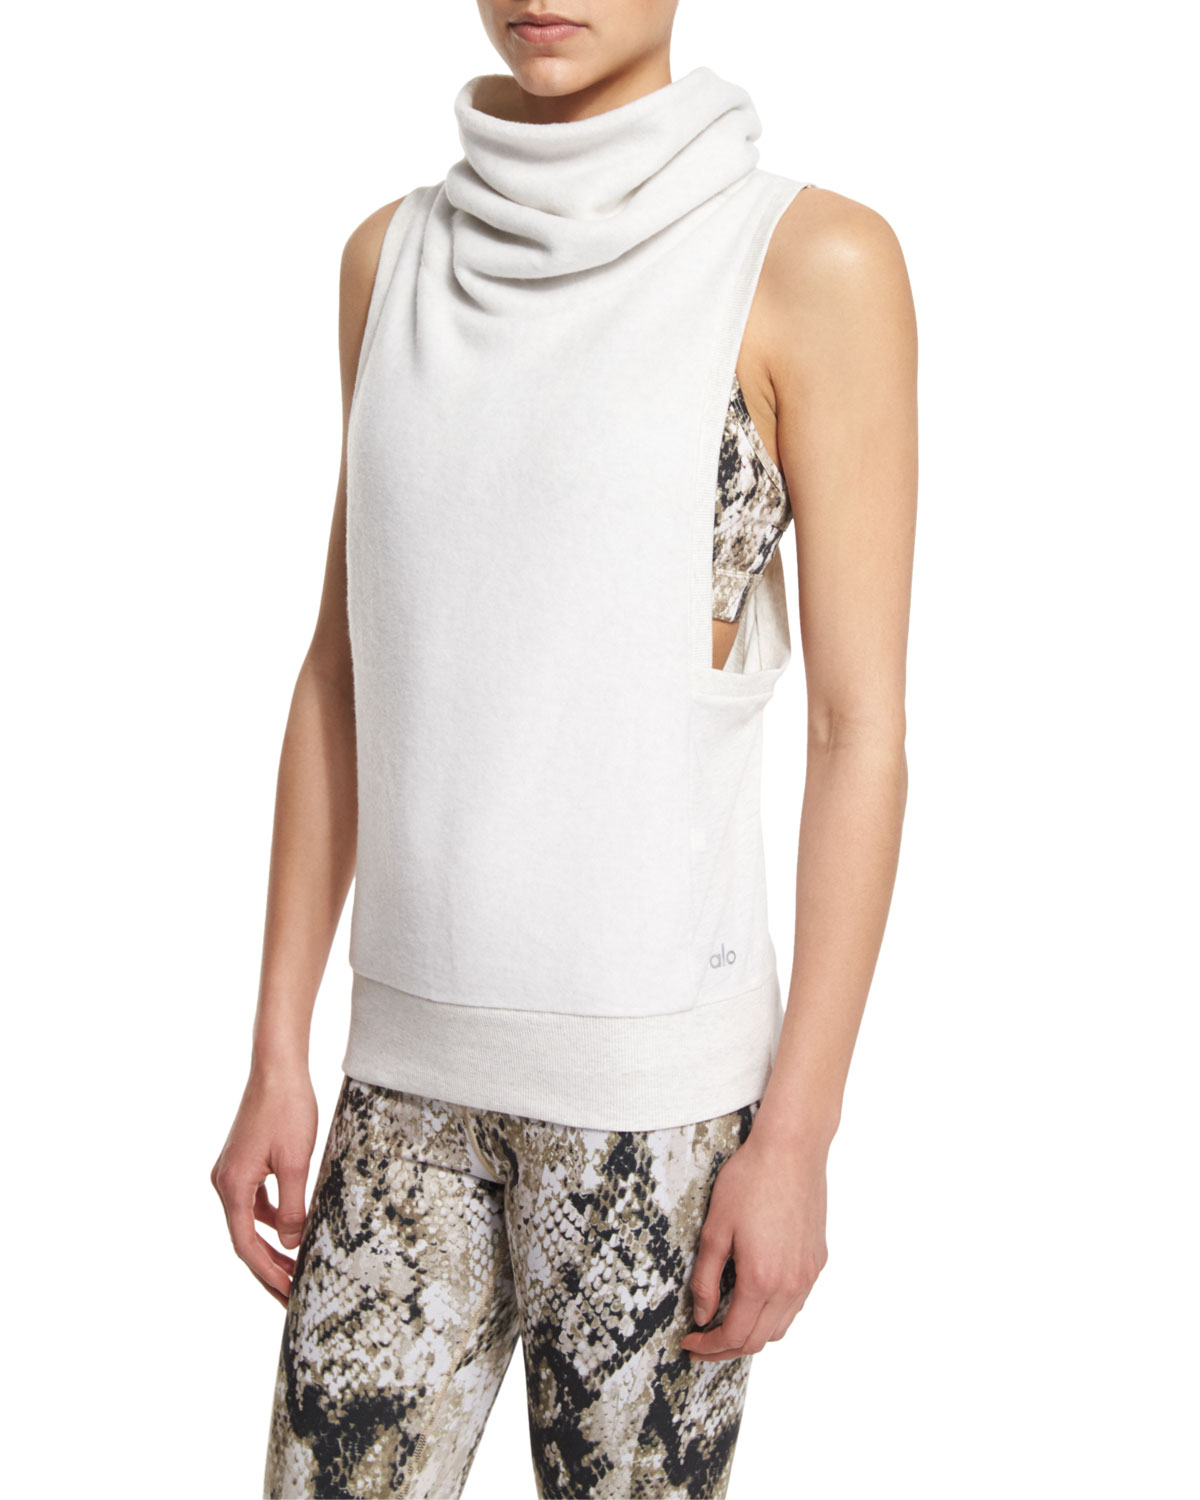 bc4d8cf7c9295 Alo Yoga Haven Turtleneck Sleeveless Sport Tank